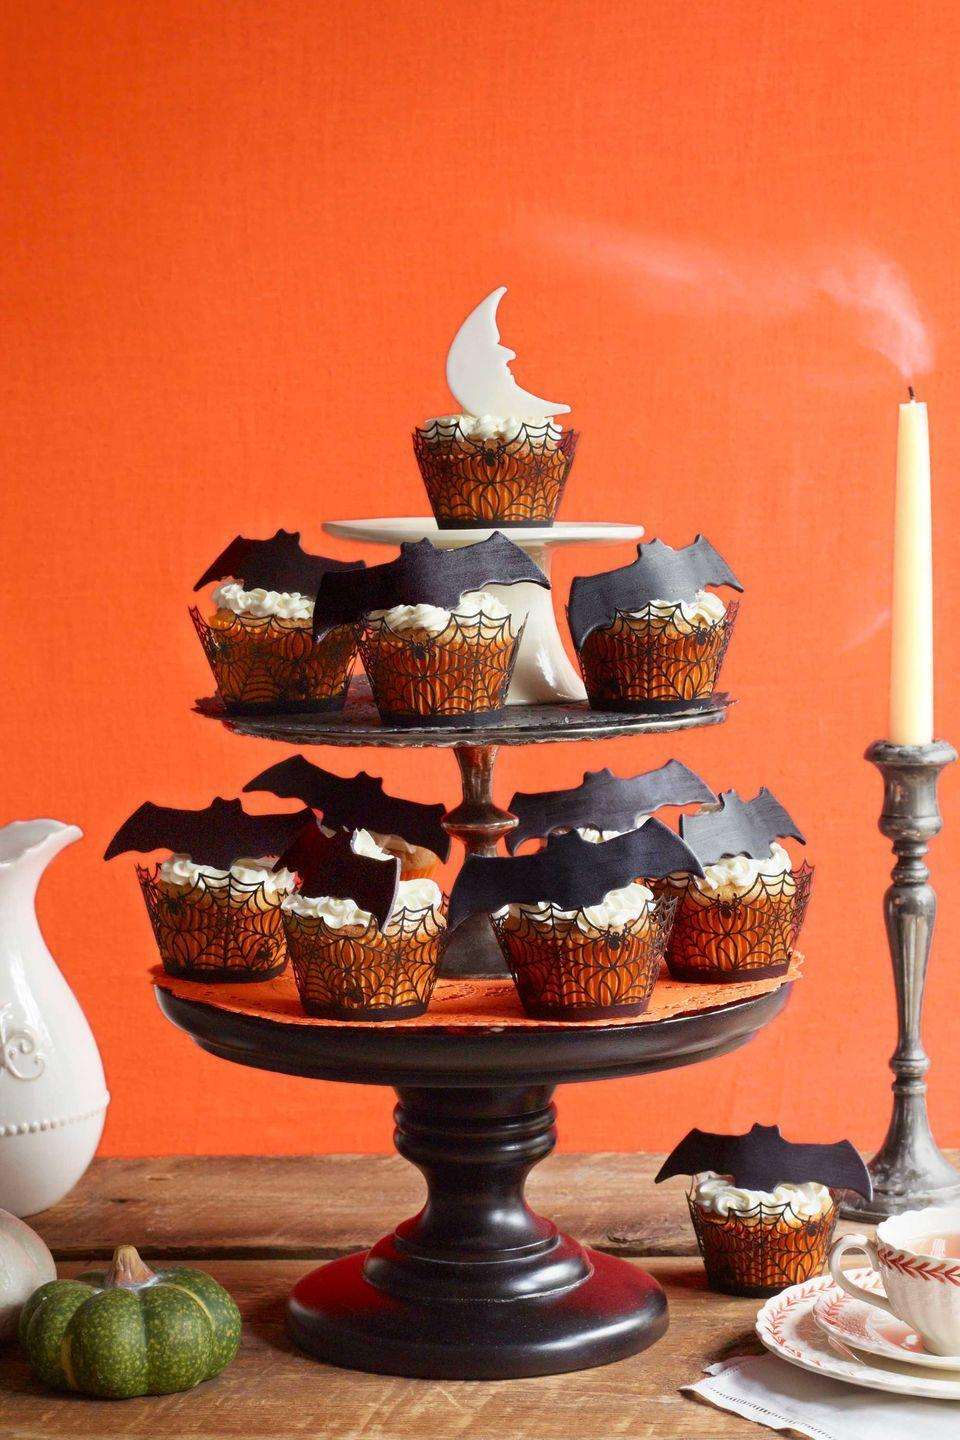 """<p>Summon this nocturnal scene by first rolling out black and white fondant separately. Use cookie cutters to create bat and moon shapes, then let fondant dry overnight to stiffen. Just before serving, perch atop buttercream-frosted cupcakes. Take cupcakes one step further with <a href=""""https://www.amazon.com/Cupcake-Wrapper-Wedding-Birthday-Decorations/dp/B01MCRDIM5?tag=syn-yahoo-20&ascsubtag=%5Bartid%7C10050.g.1366%5Bsrc%7Cyahoo-us"""" rel=""""nofollow noopener"""" target=""""_blank"""" data-ylk=""""slk:paper spider web wrappers"""" class=""""link rapid-noclick-resp"""">paper spider web wrappers</a><em>.</em></p><p><strong><a href=""""https://www.countryliving.com/food-drinks/recipes/a847/cupcakes-americana-60/"""" rel=""""nofollow noopener"""" target=""""_blank"""" data-ylk=""""slk:Get basic cupcake recipe"""" class=""""link rapid-noclick-resp"""">Get basic cupcake recipe</a>.</strong><br></p><p><a class=""""link rapid-noclick-resp"""" href=""""https://www.amazon.com/Zicome-Halloween-Cookie-Cutter-Assorted/dp/B01LYGF0PF?tag=syn-yahoo-20&ascsubtag=%5Bartid%7C10050.g.1366%5Bsrc%7Cyahoo-us"""" rel=""""nofollow noopener"""" target=""""_blank"""" data-ylk=""""slk:SHOP BAT COOKIE CUTTERS"""">SHOP BAT COOKIE CUTTERS</a></p>"""